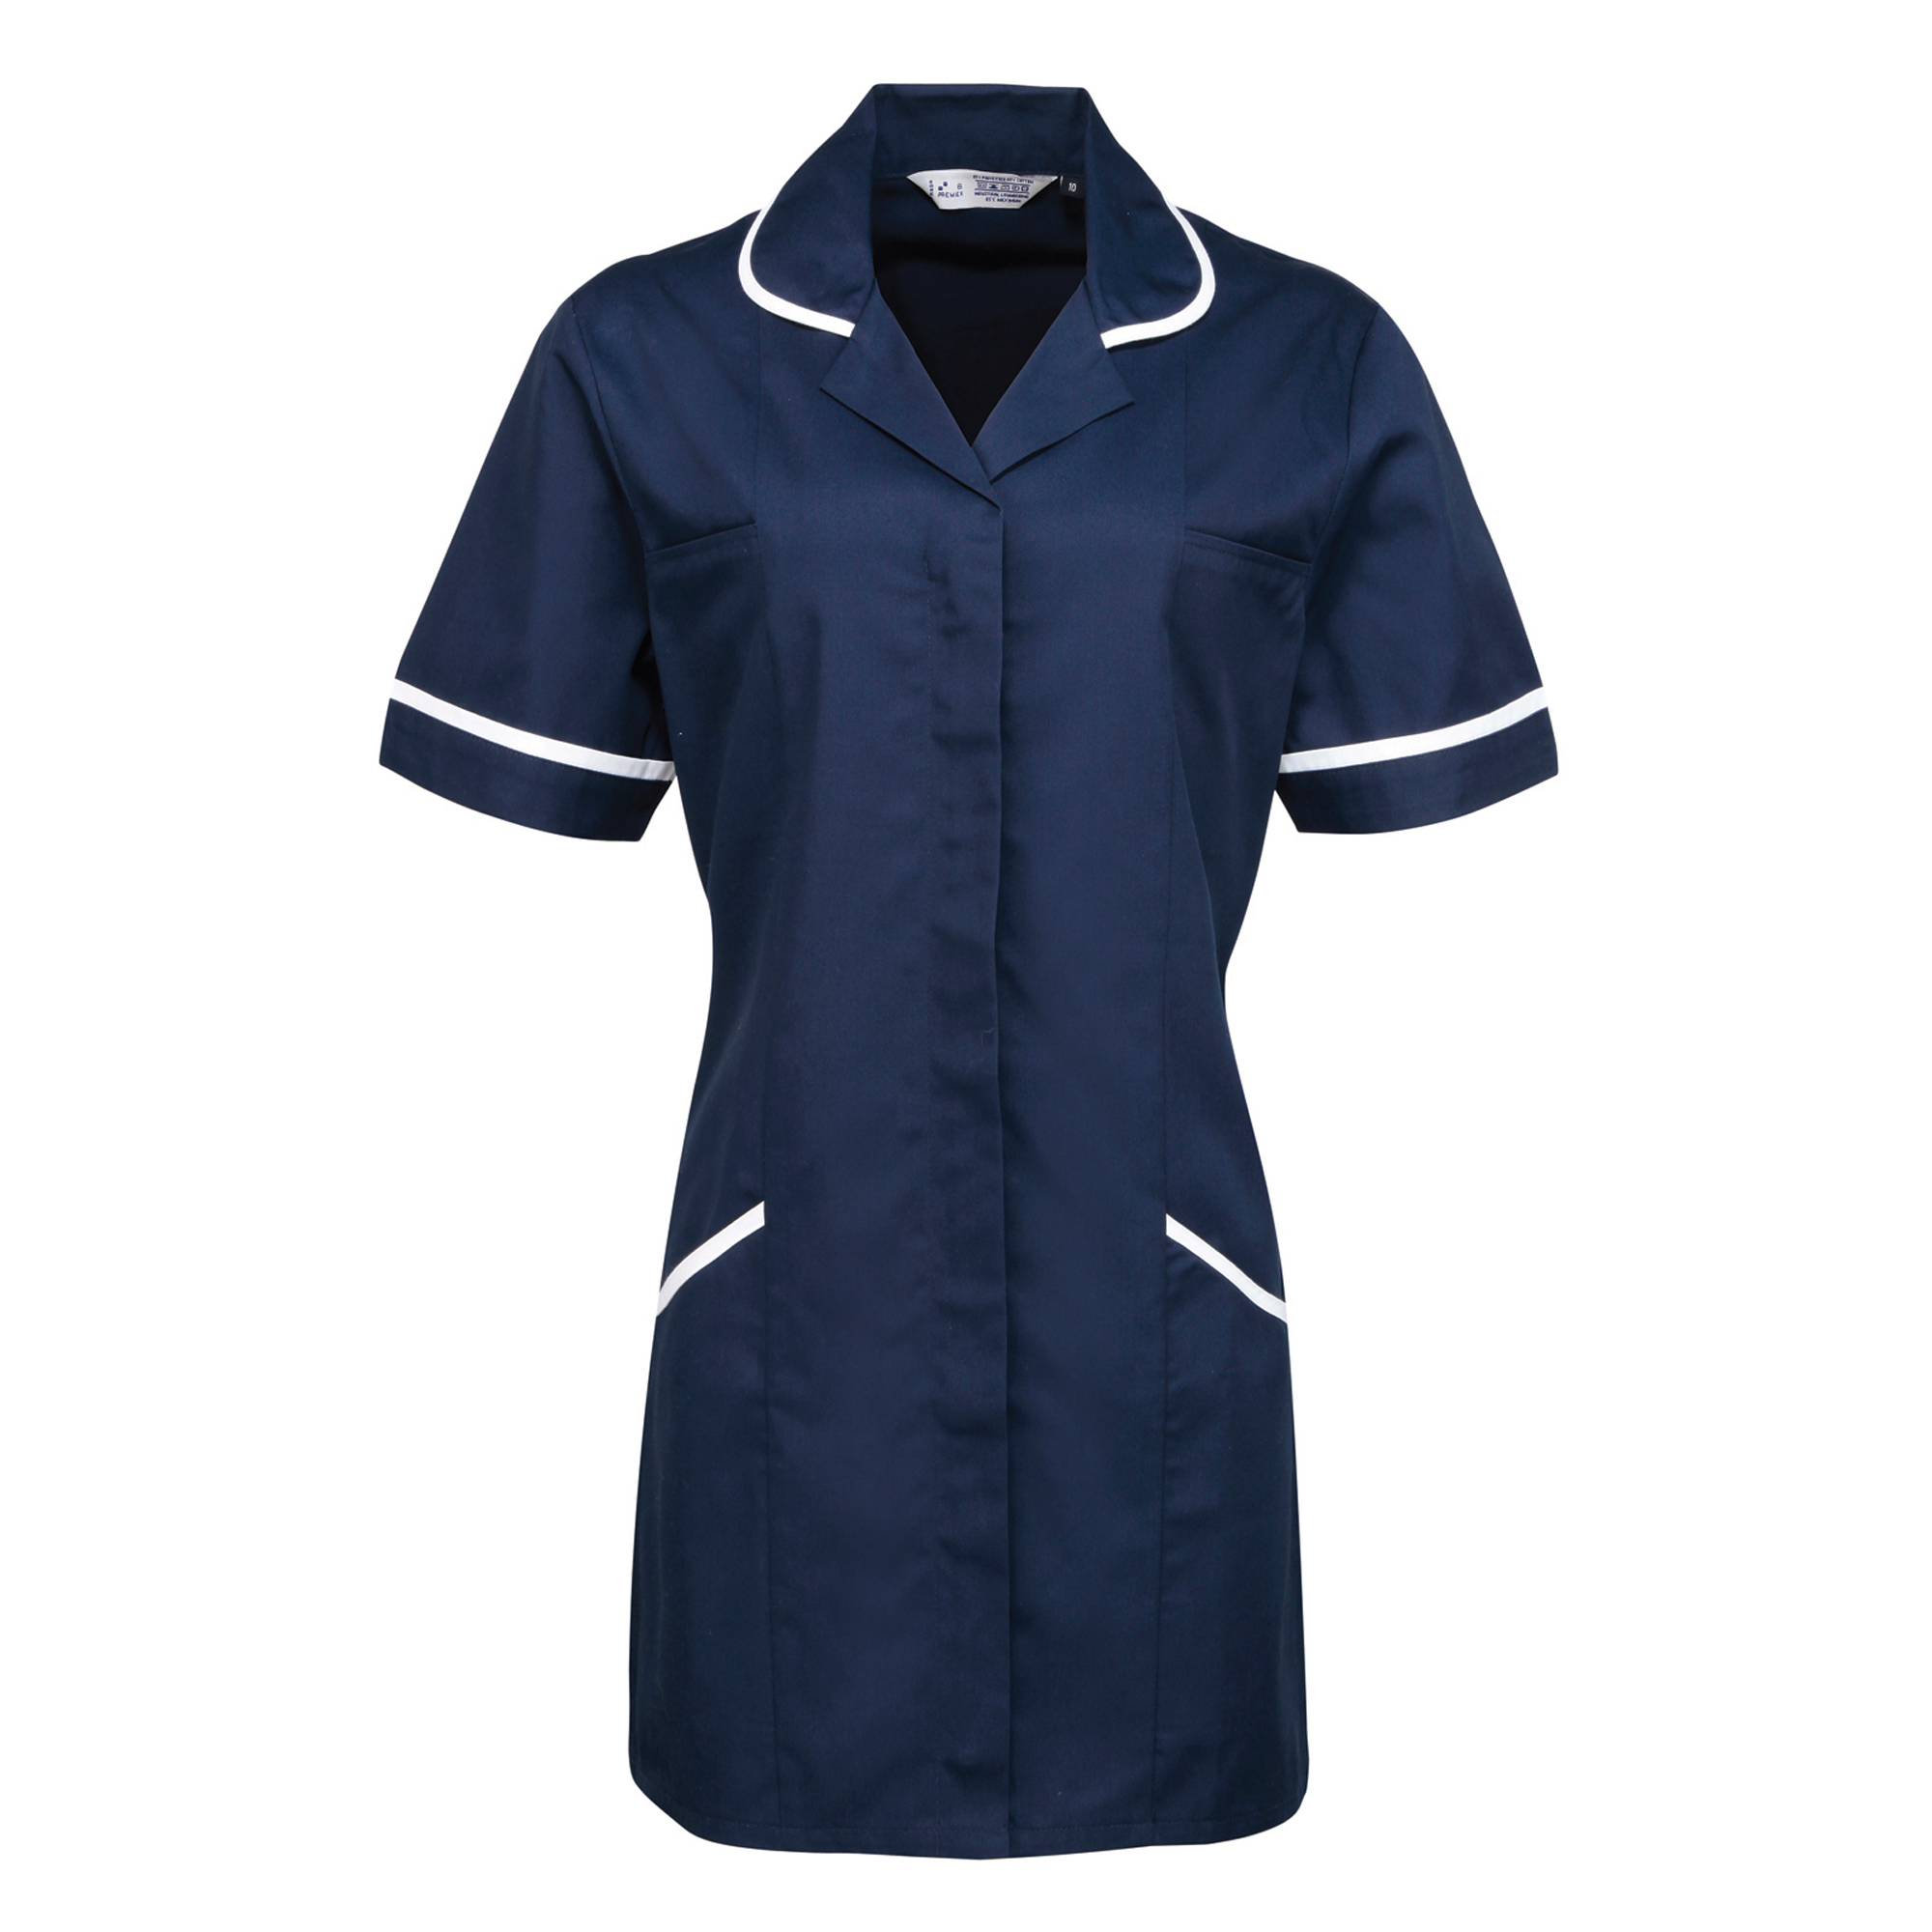 Premier Ladies/Womens Vitality Medical/Healthcare Work Tunic (Pack of 2) (24) (Navy/ White)